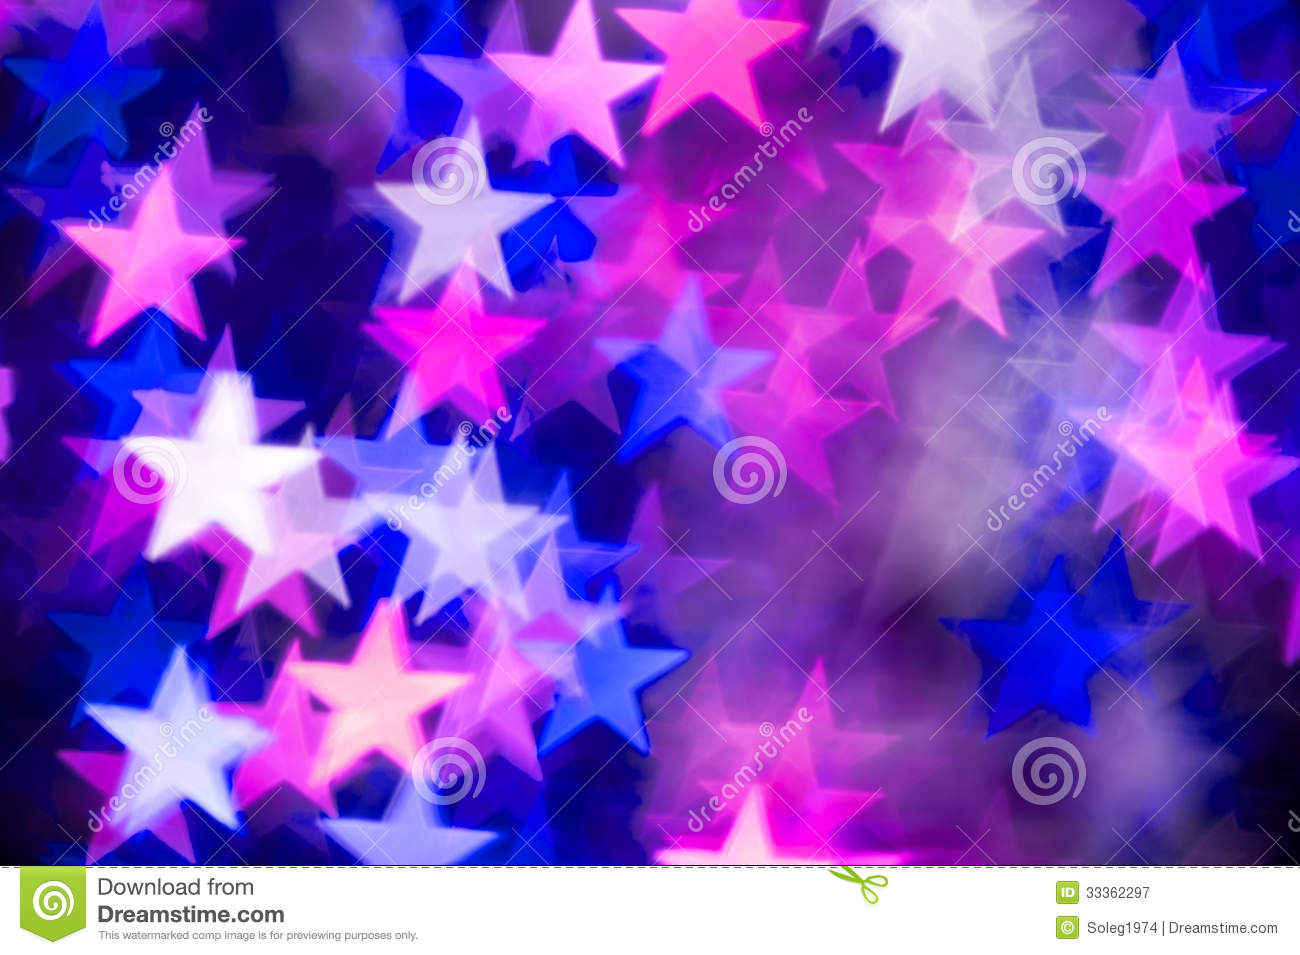 Pink and blue stars stock image image of festive background 33362297 pink and blue stars thecheapjerseys Choice Image